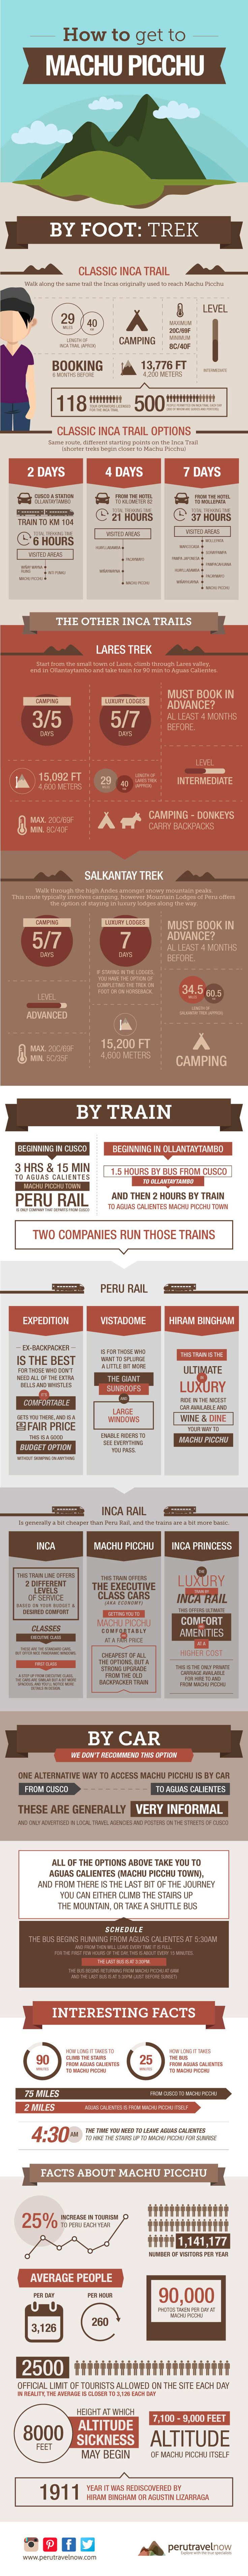 how-to-get-to-machu-picchu-infographic-perutravelnow.com_.jpg 787×8 191 pikseli